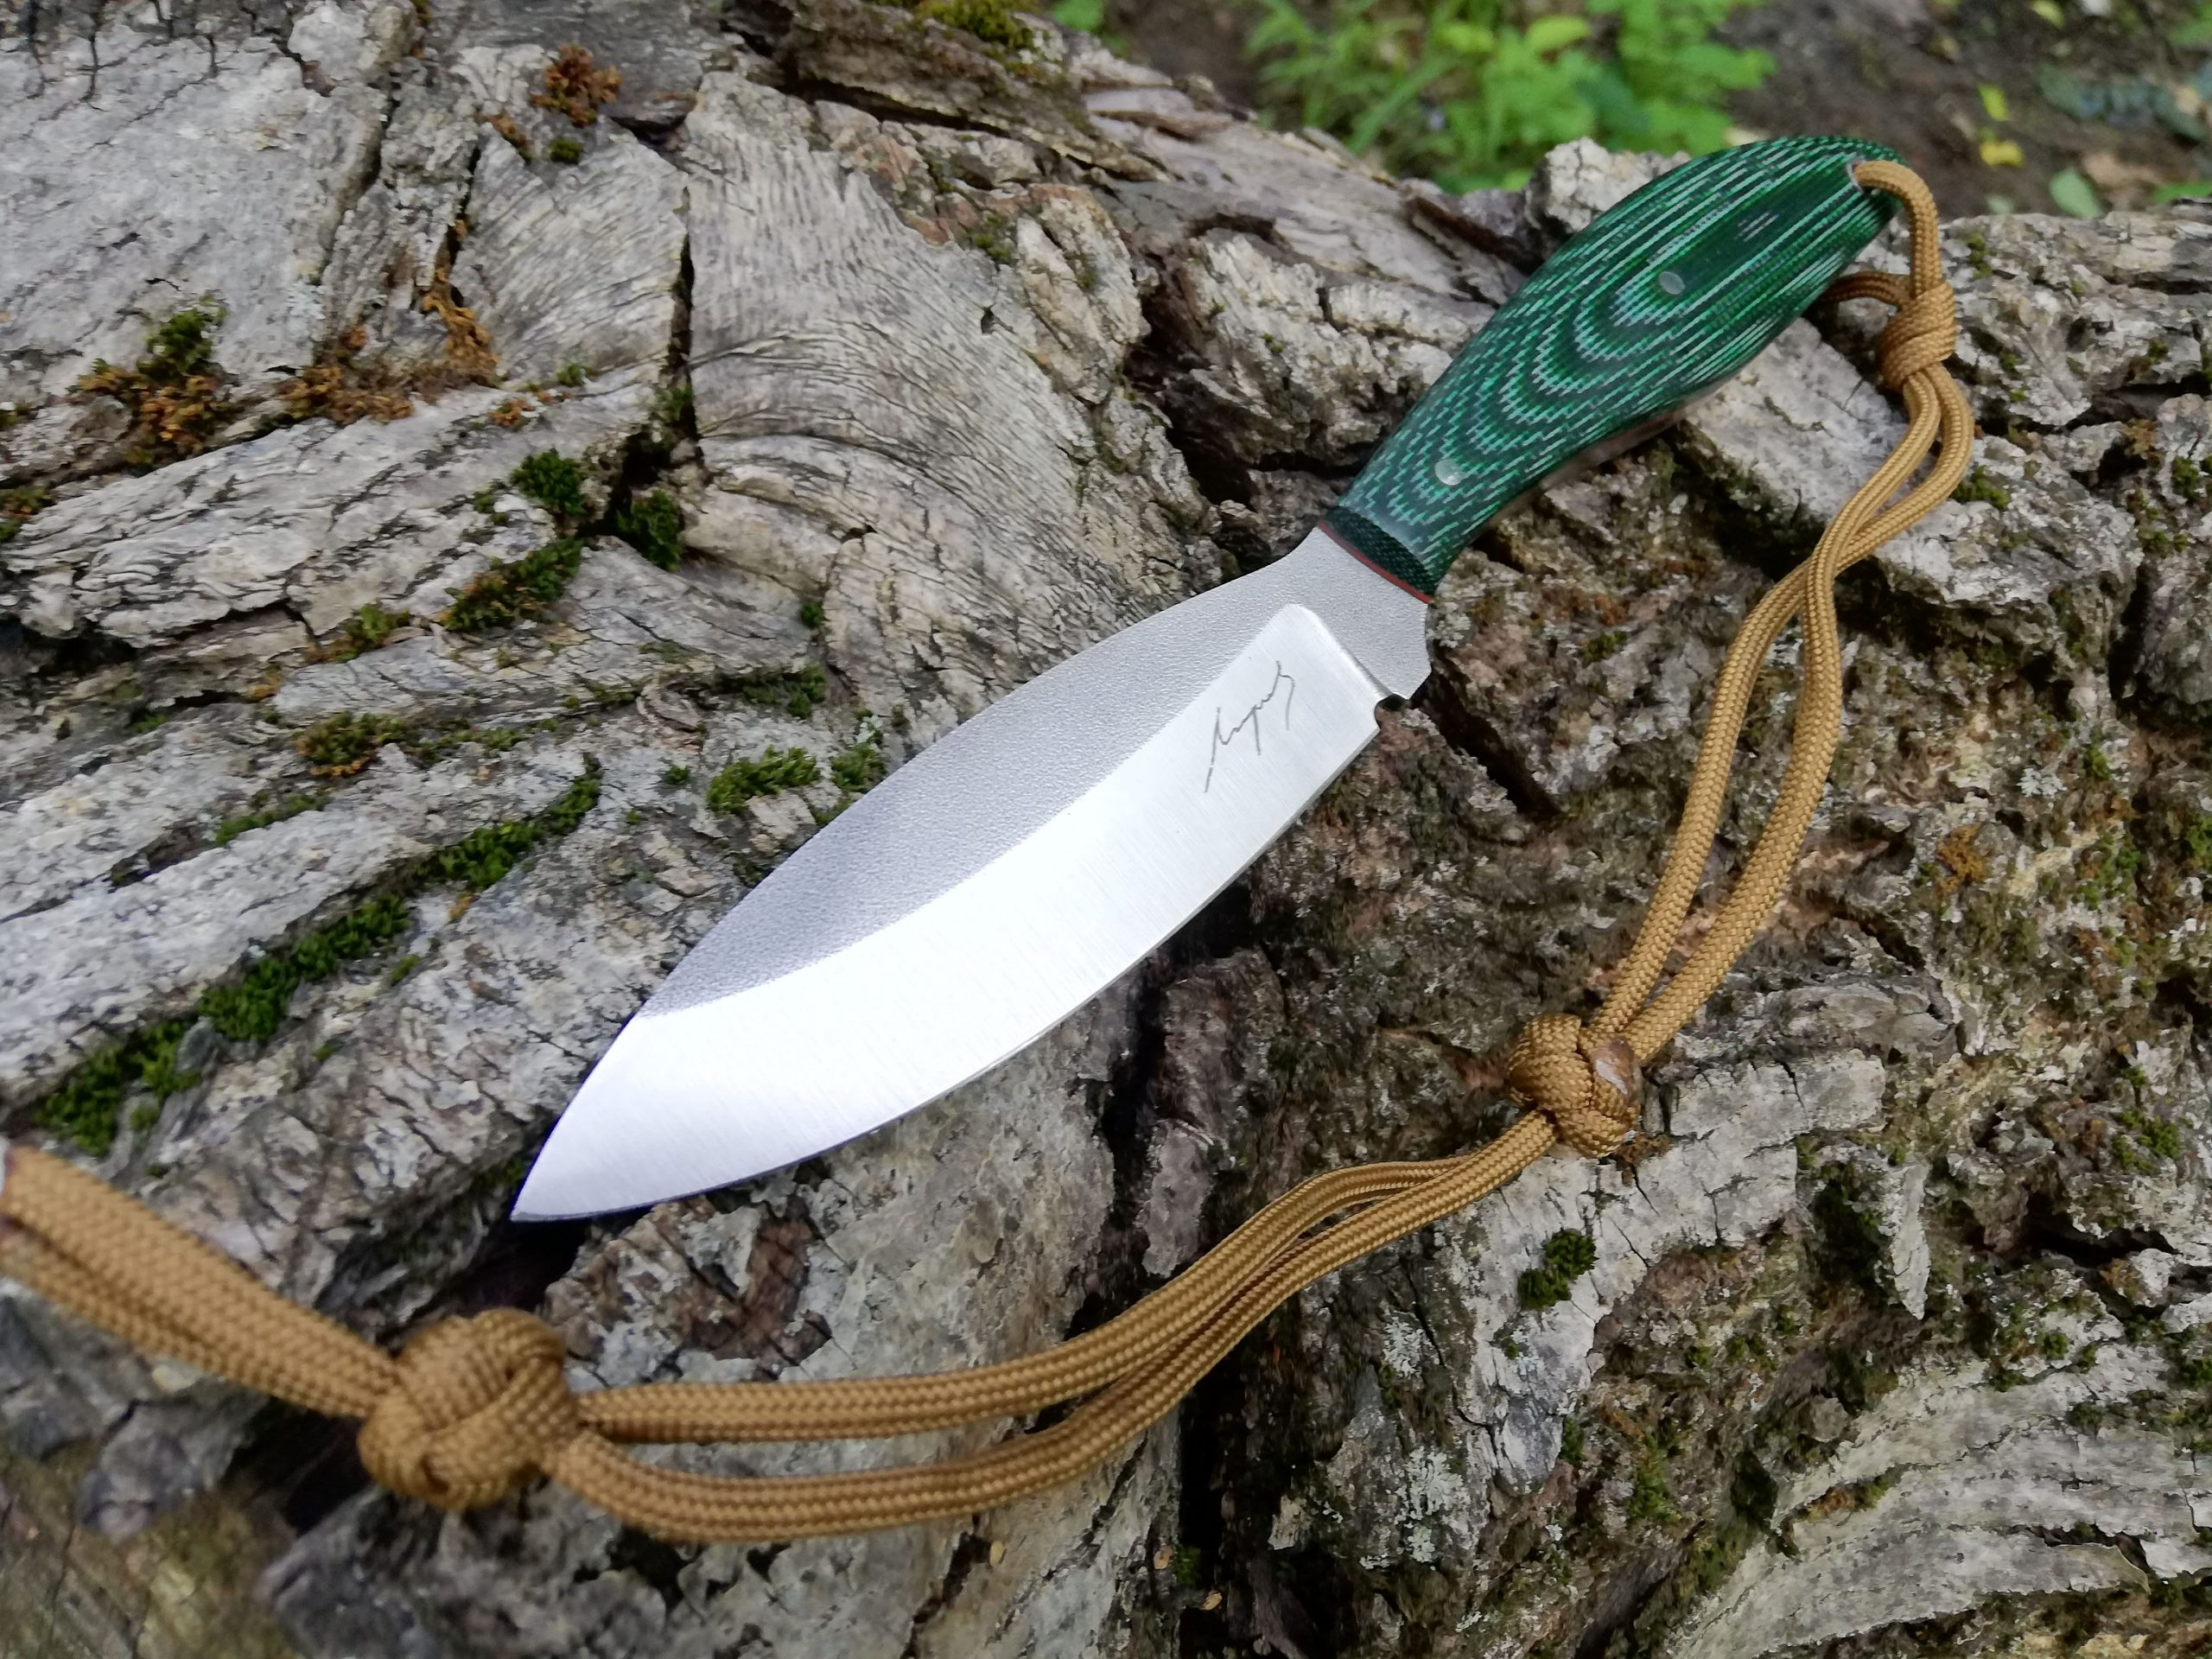 Strange looking knife, but really comfortable. The Canadian belt knife is made from hunter for hunters.